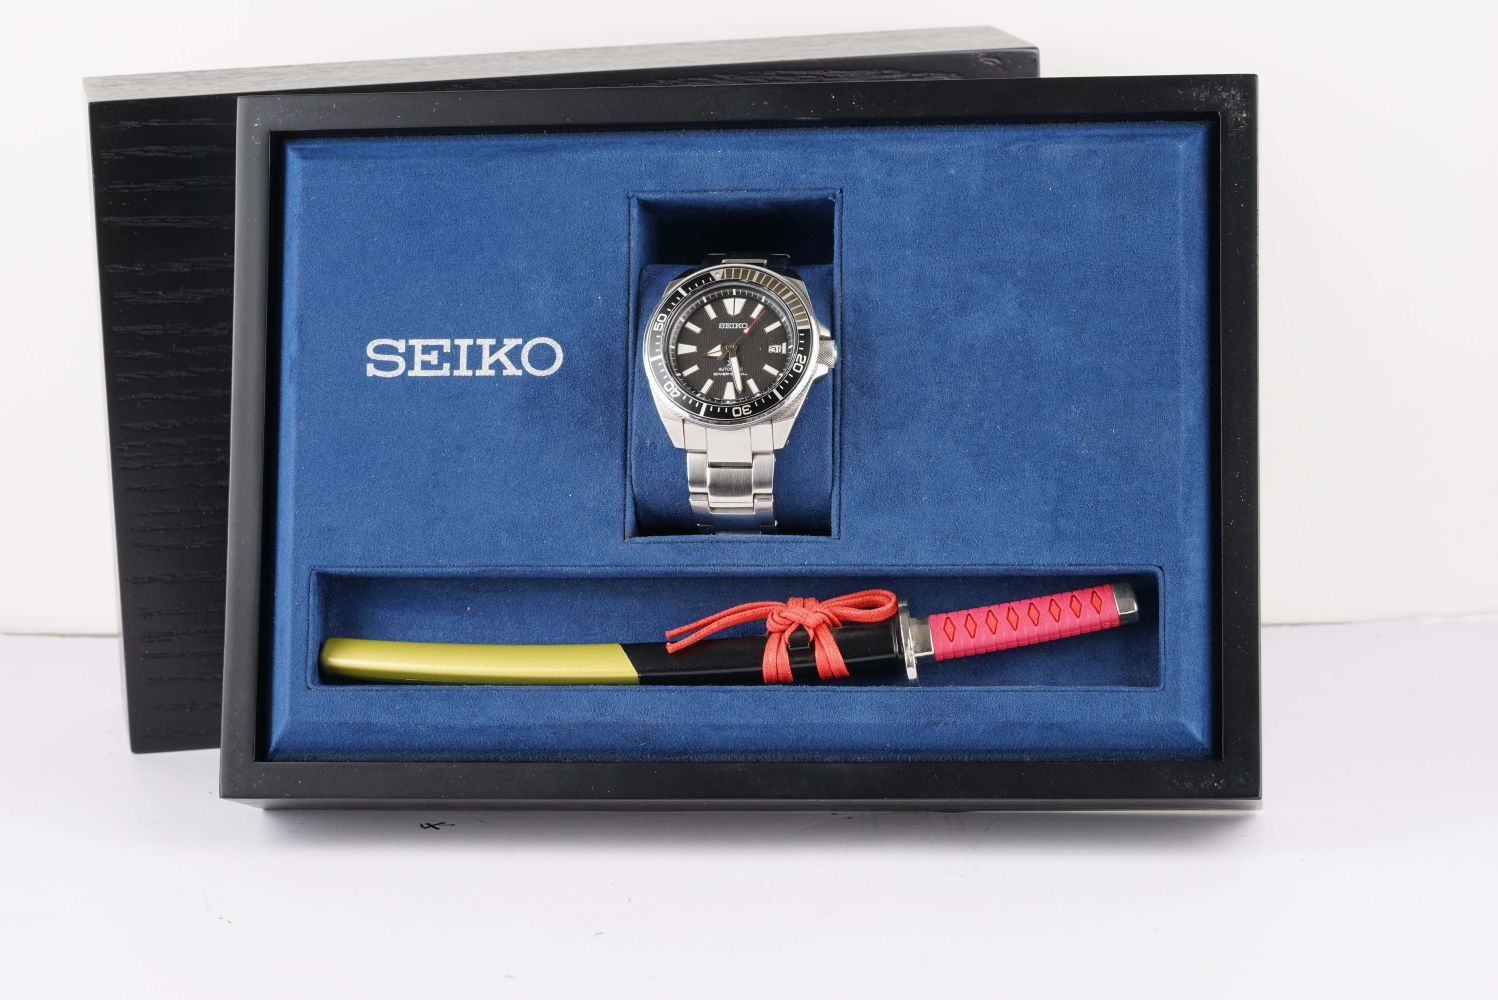 GENTLEMENS SEIKO SAMURAI AUTOMATIC WRISTWATCH W/ BOX & LETTER KNIFE, circular black waffle dial with - Image 2 of 2